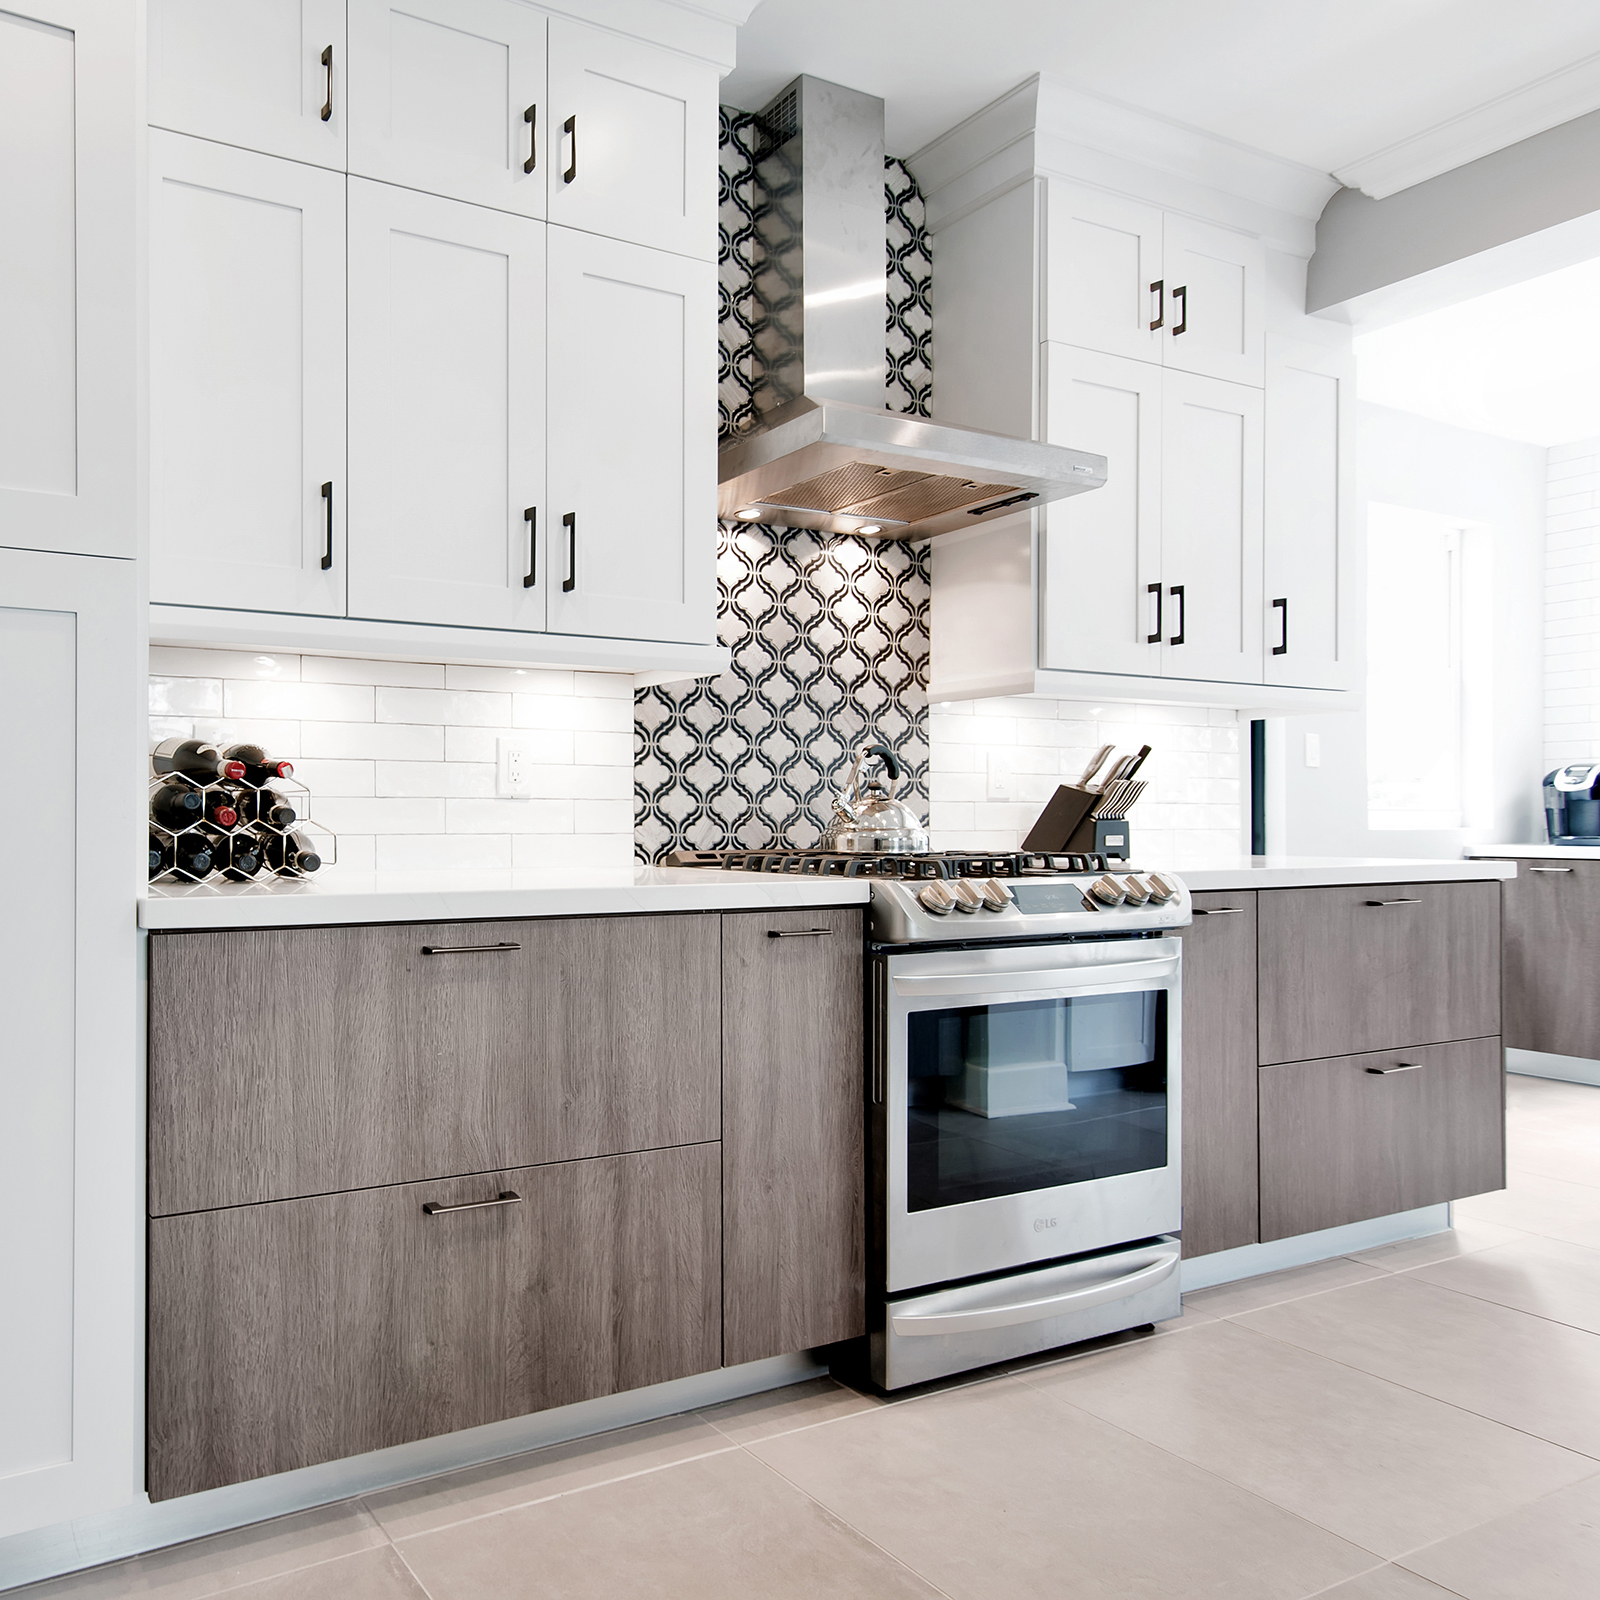 KabCo-Kitchens-arabesco-miami-kitchen-remodel-Thumb3